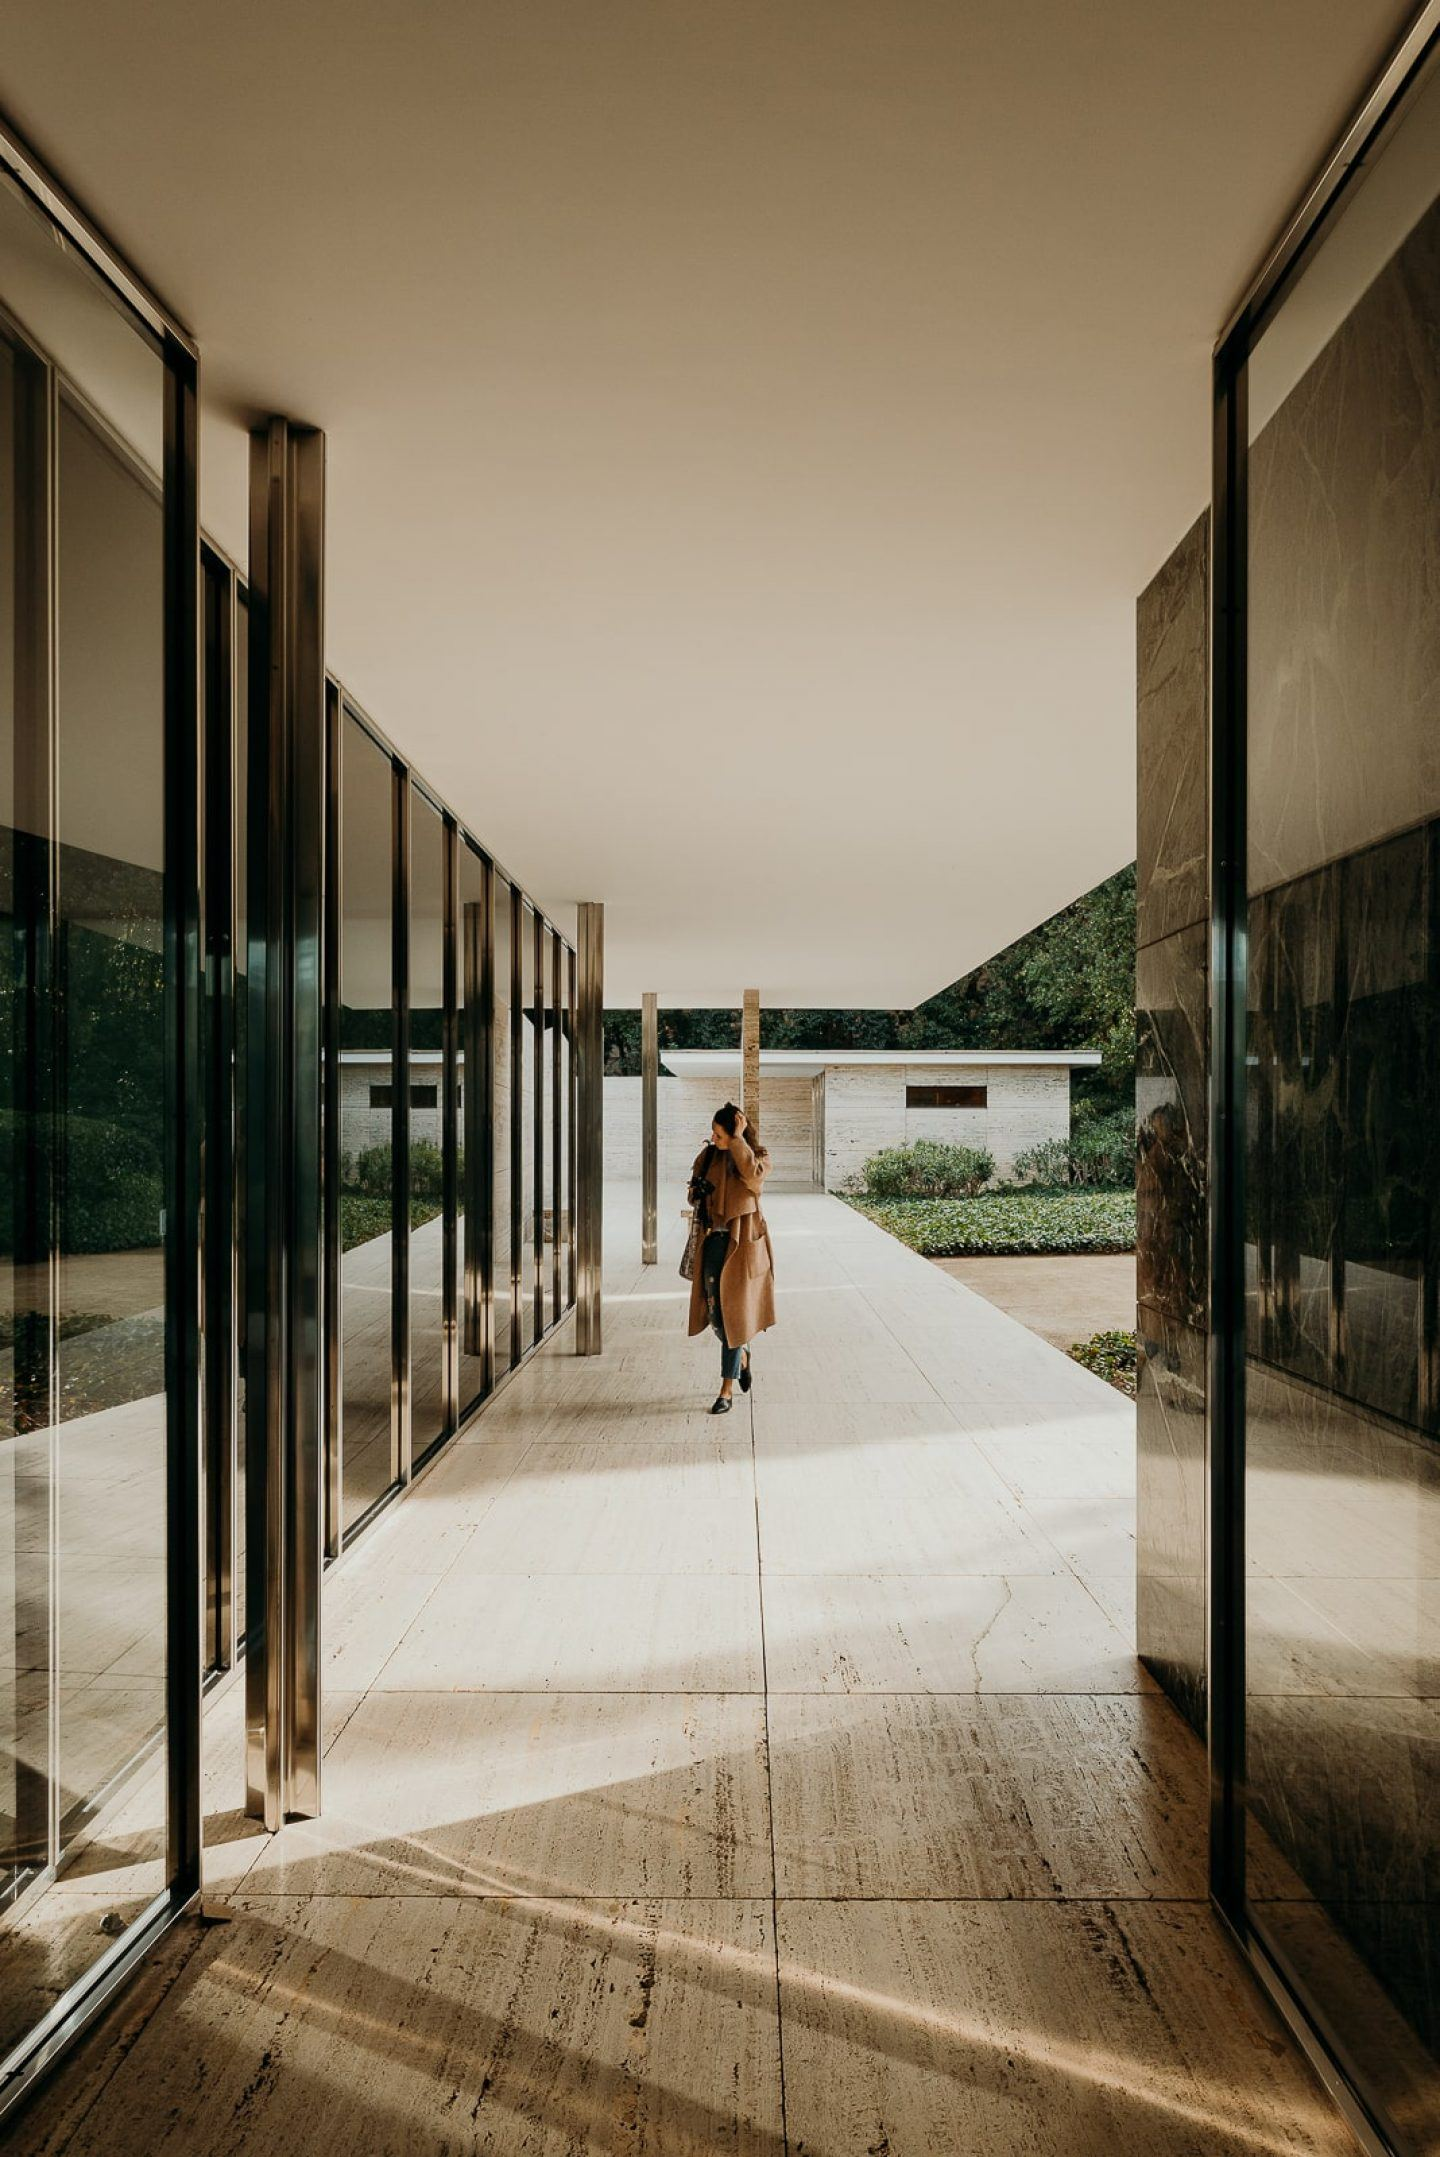 IGNANT-Architecture-Barcelona-Pavilion-Ludwig-Mies-Van-Der-Rohe-Maciej-Jezyk-017